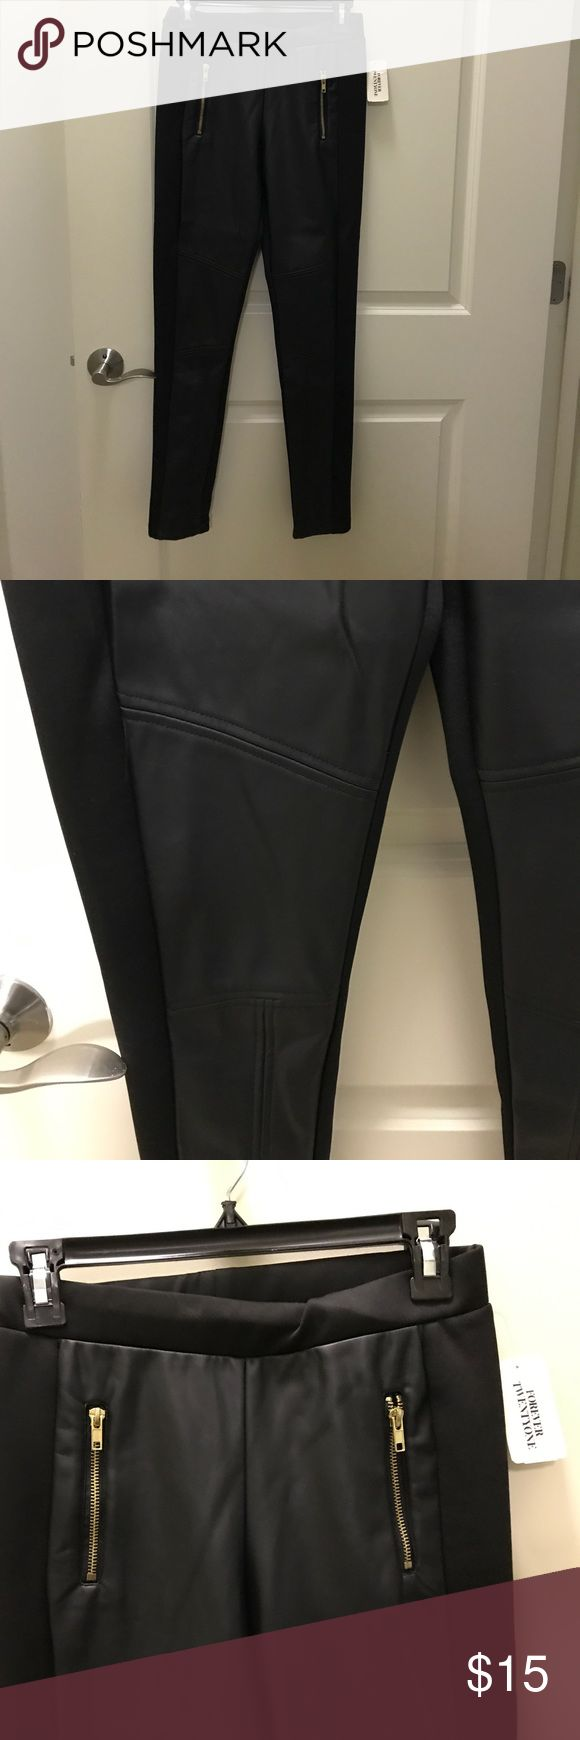 Black cool leggings Faux leather mixed with a thick legging material. Very warm and stylish. Forever 21 Pants Leggings